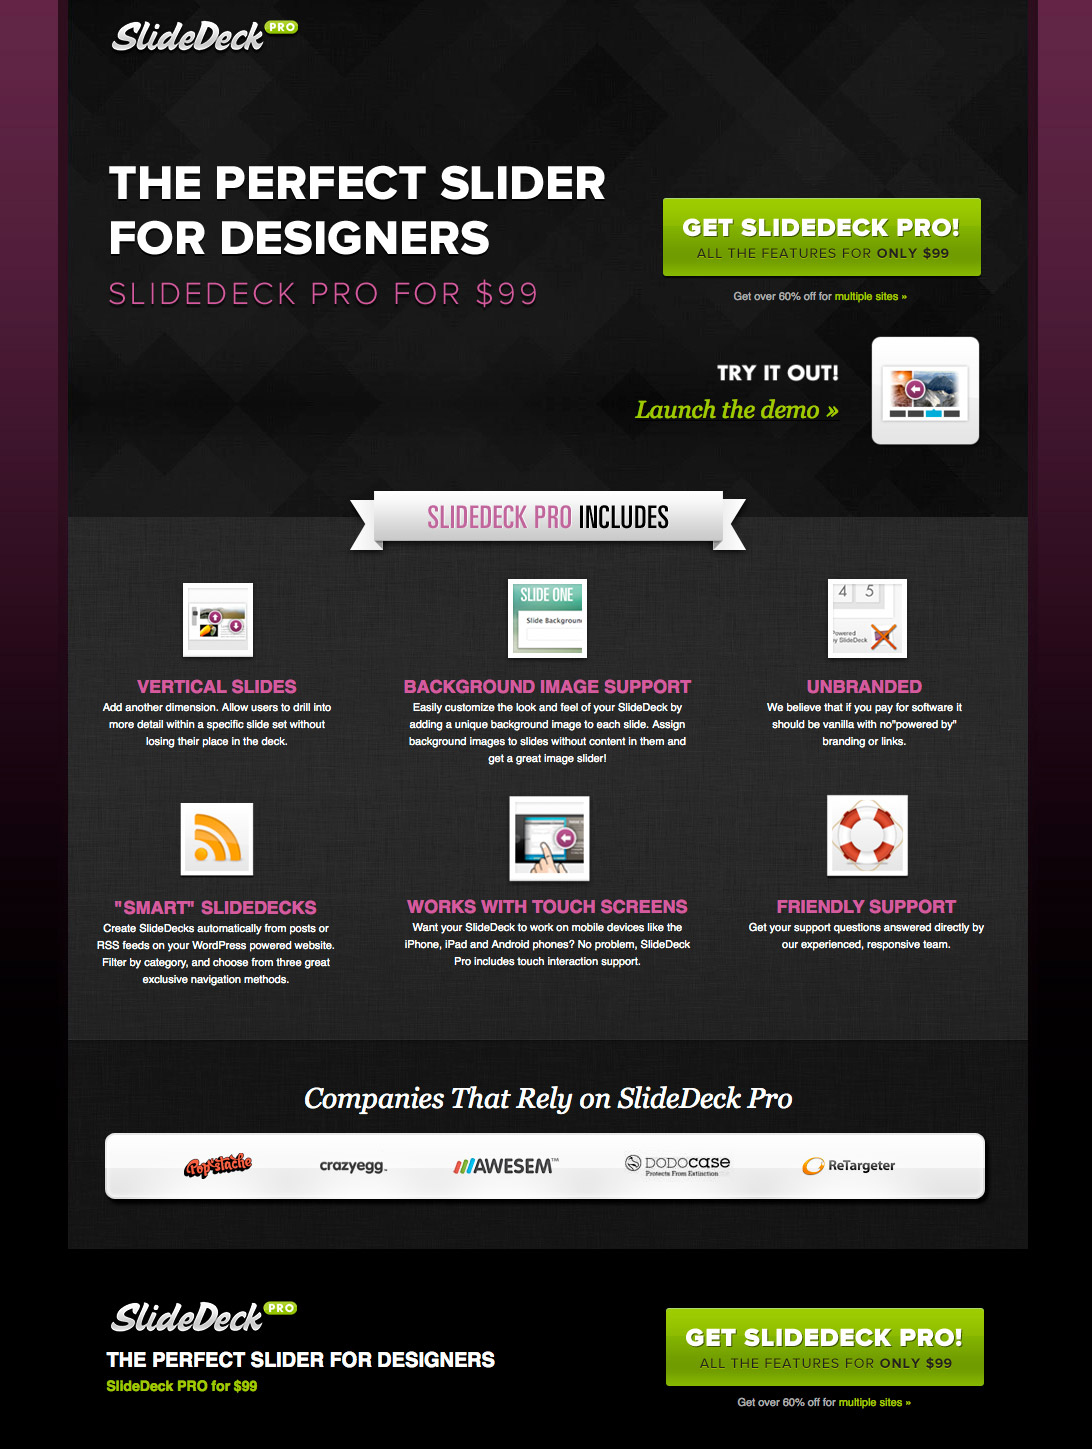 35 Beautiful Landing Page Design Examples to Drool Over [With Critiques]